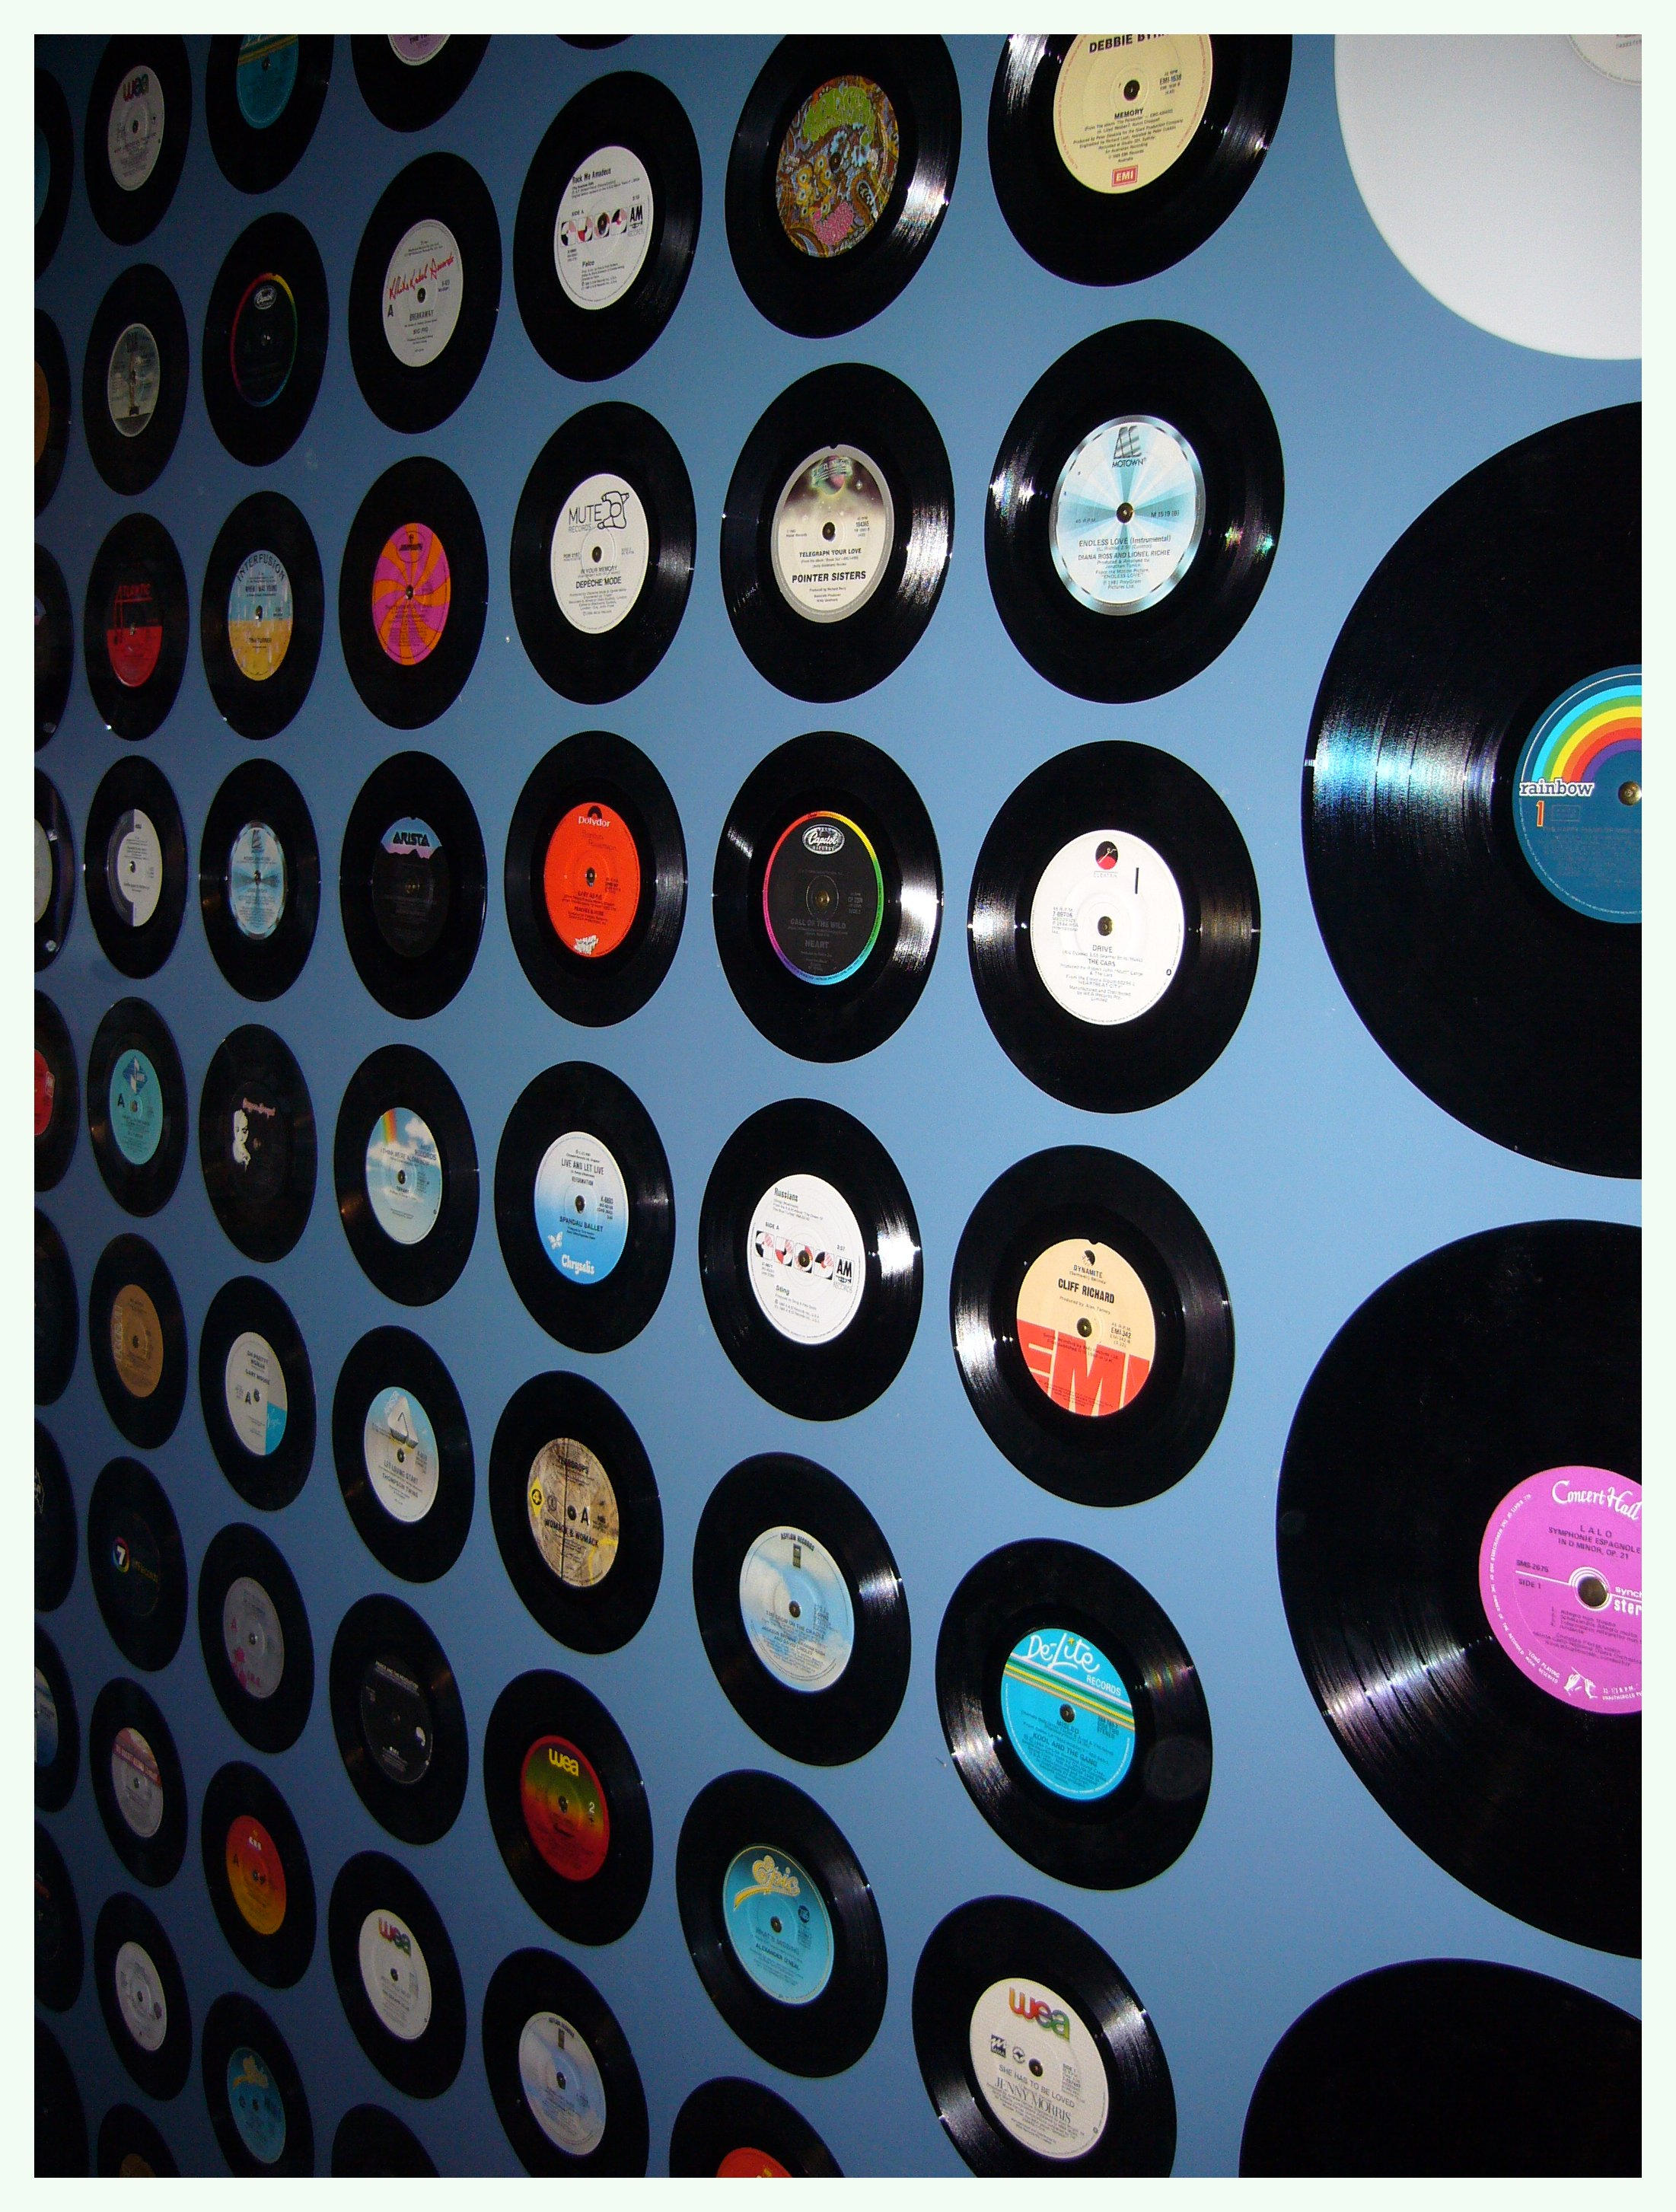 My bedroom wall of records by oche on deviantart for Vinyl records decorations for wall